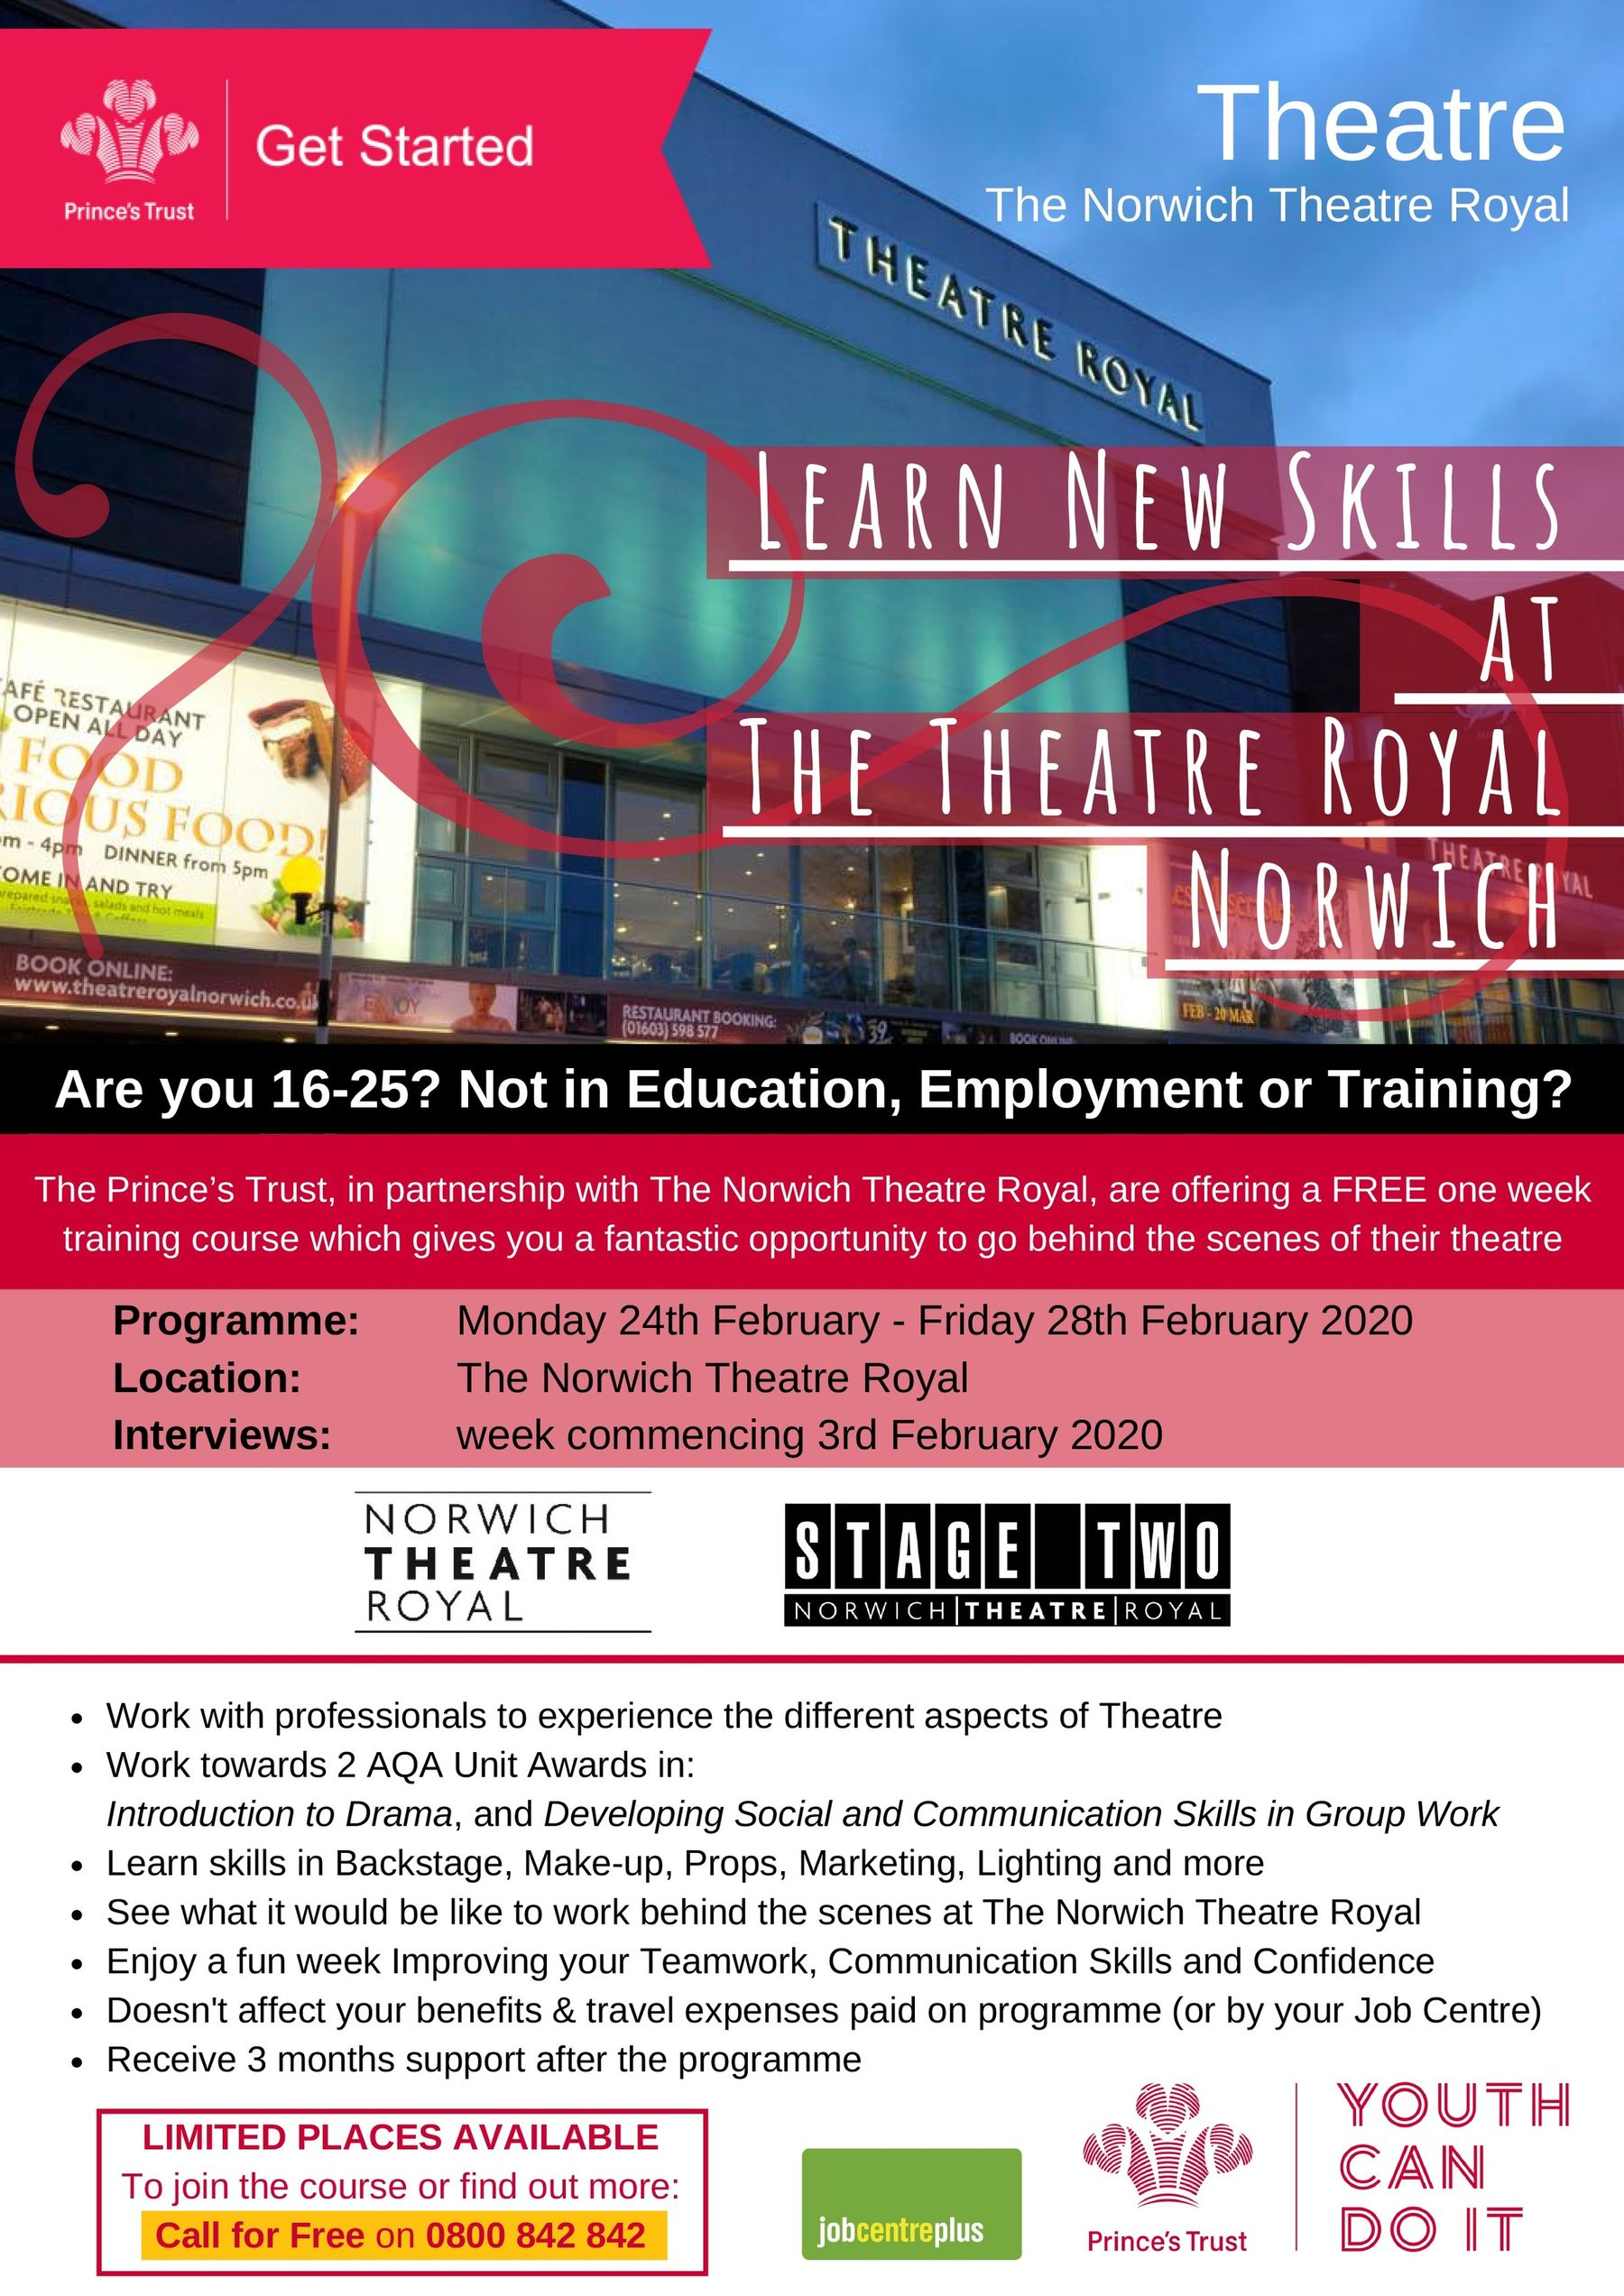 Prince's Trust 2020: Get Started With Theatre